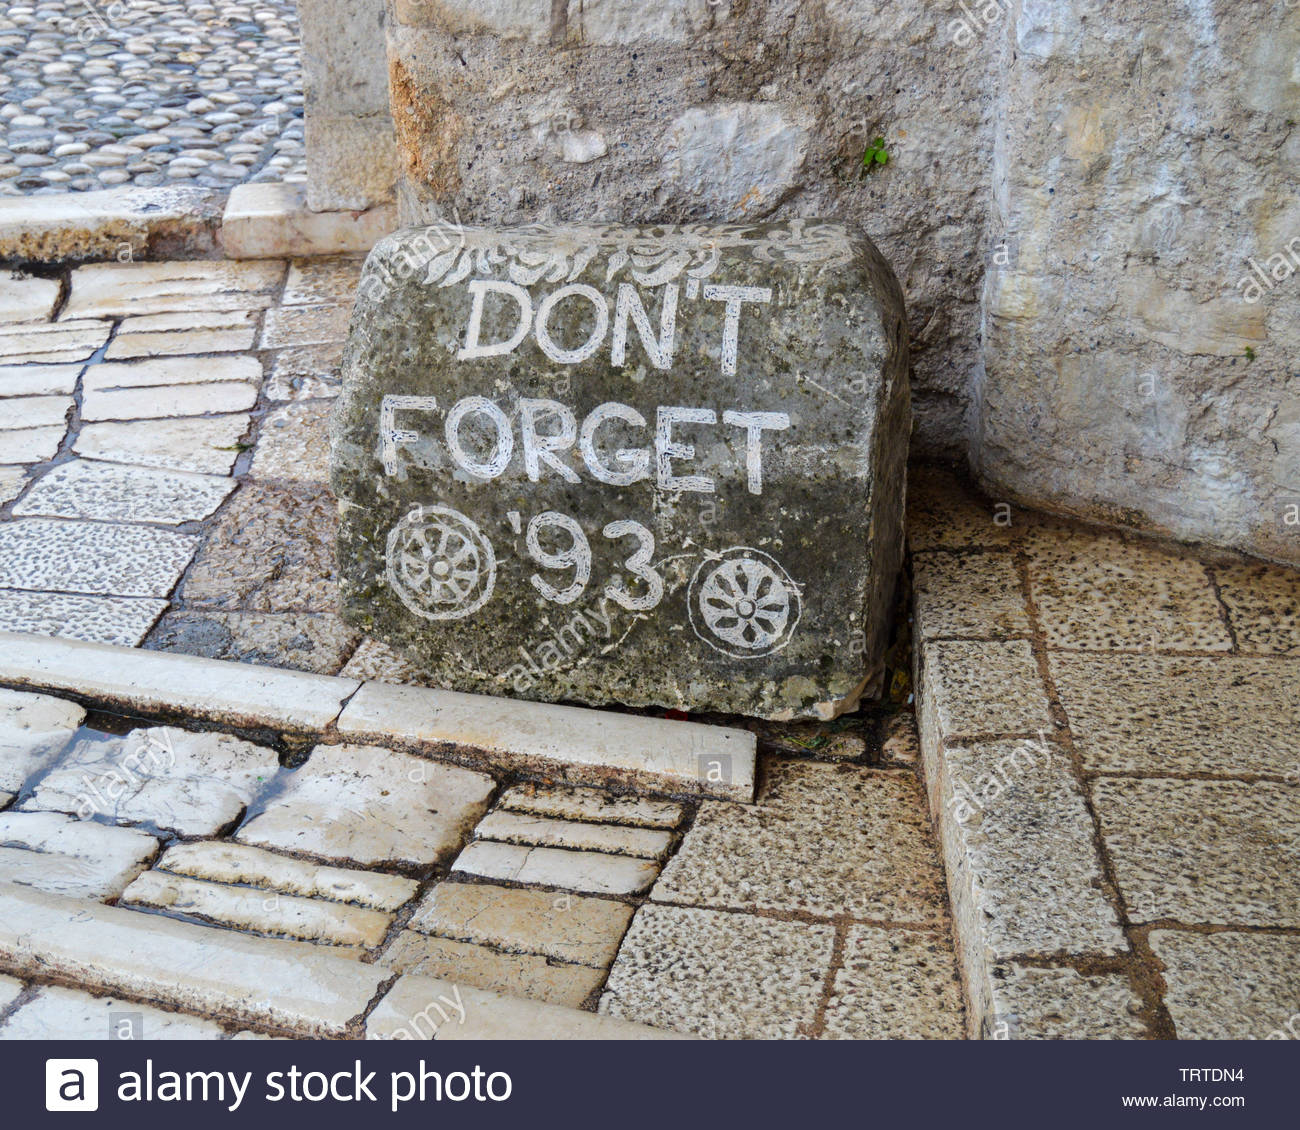 Memorial stone for the victims of the Bosnia War, Mostar, Bosnia & Herzegovina - Stock Image